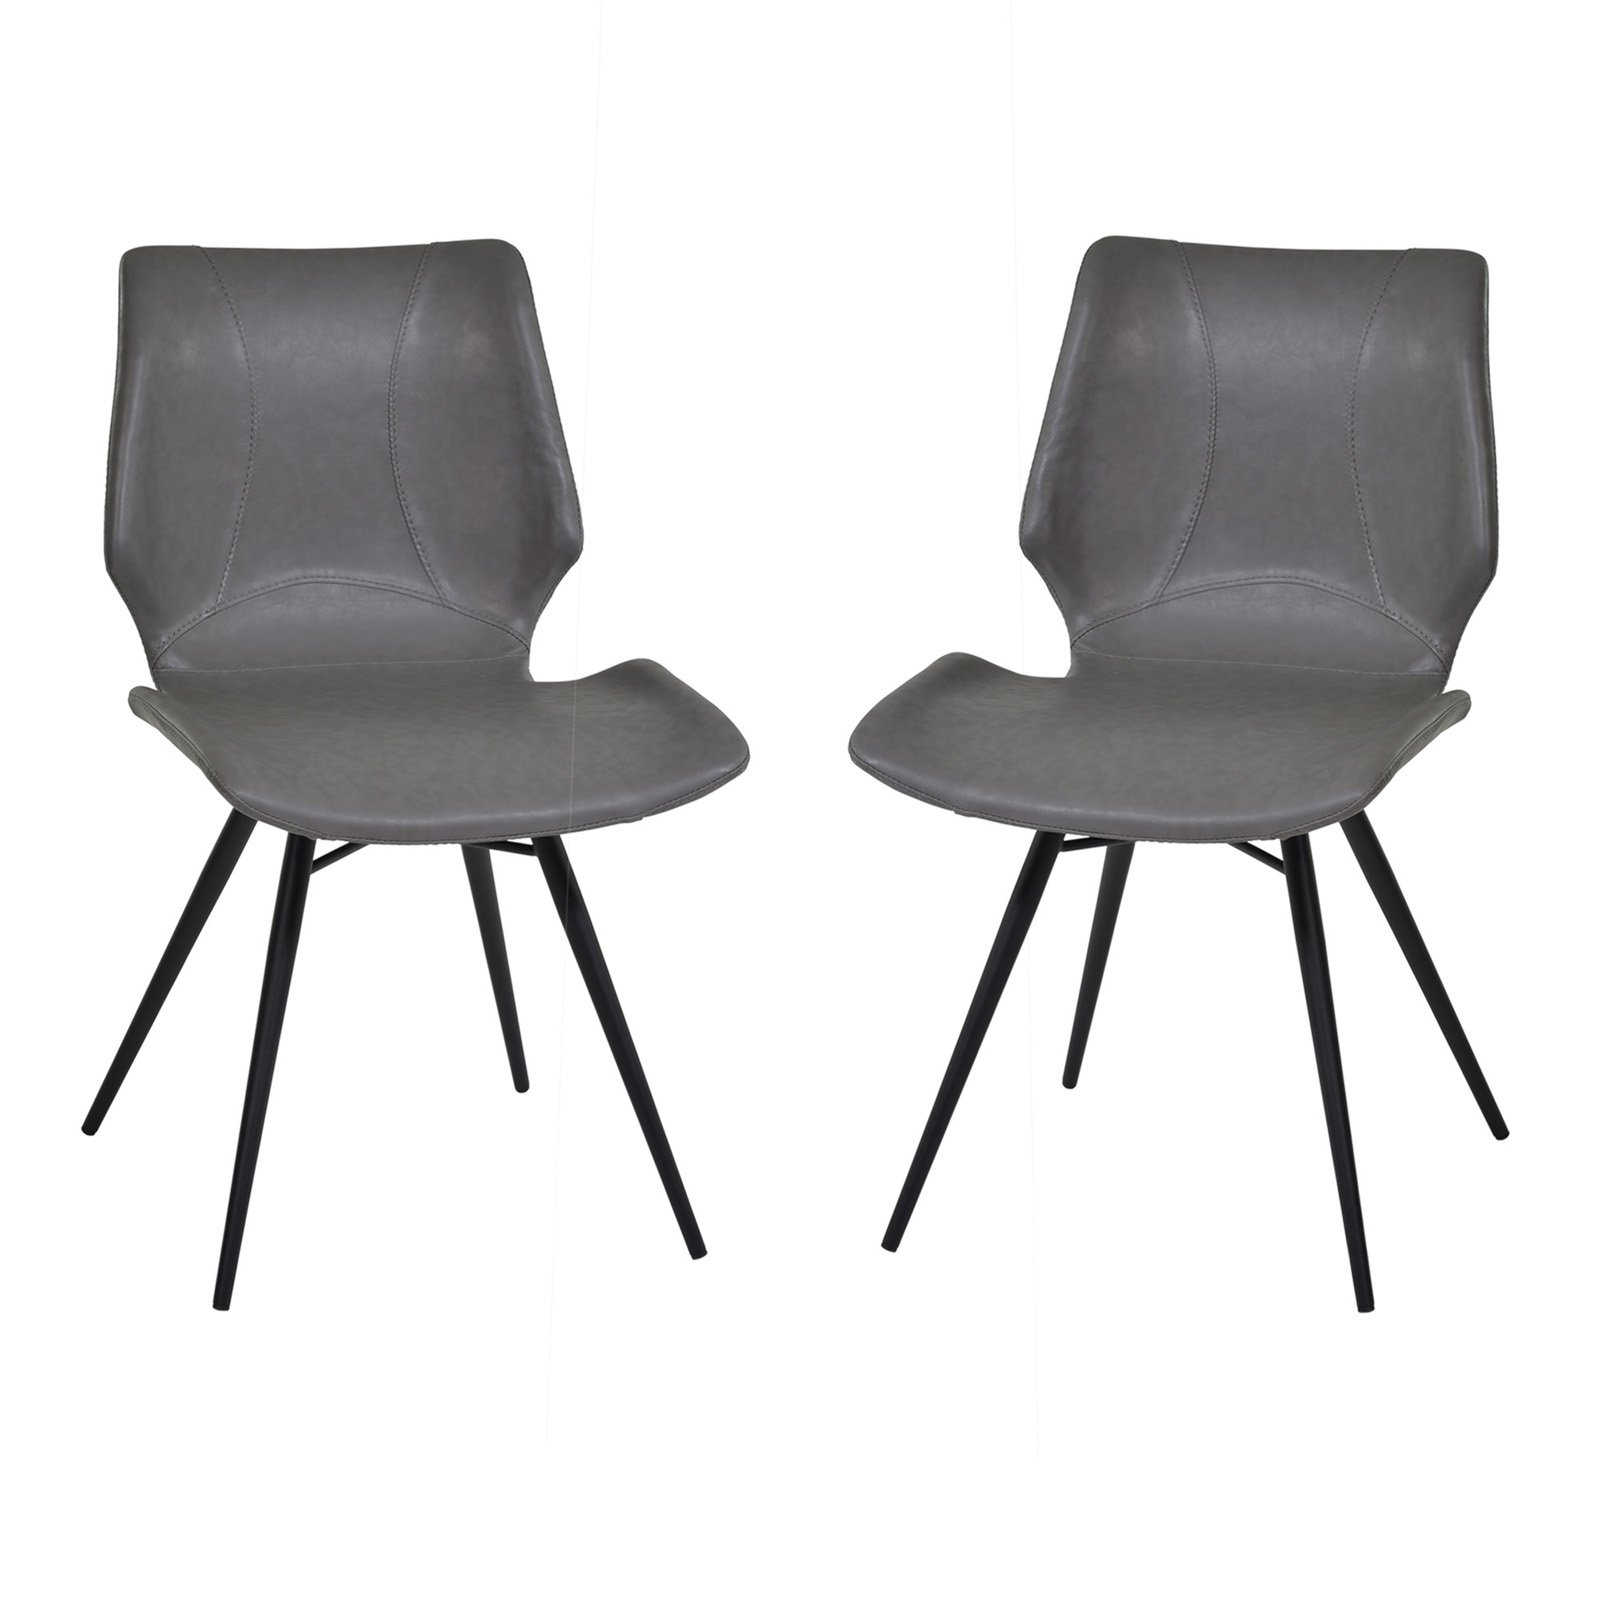 Armen Living Zurich Dining Chair in Vintage Pu and Black Metal Finish (Set of 2) by Armen Living